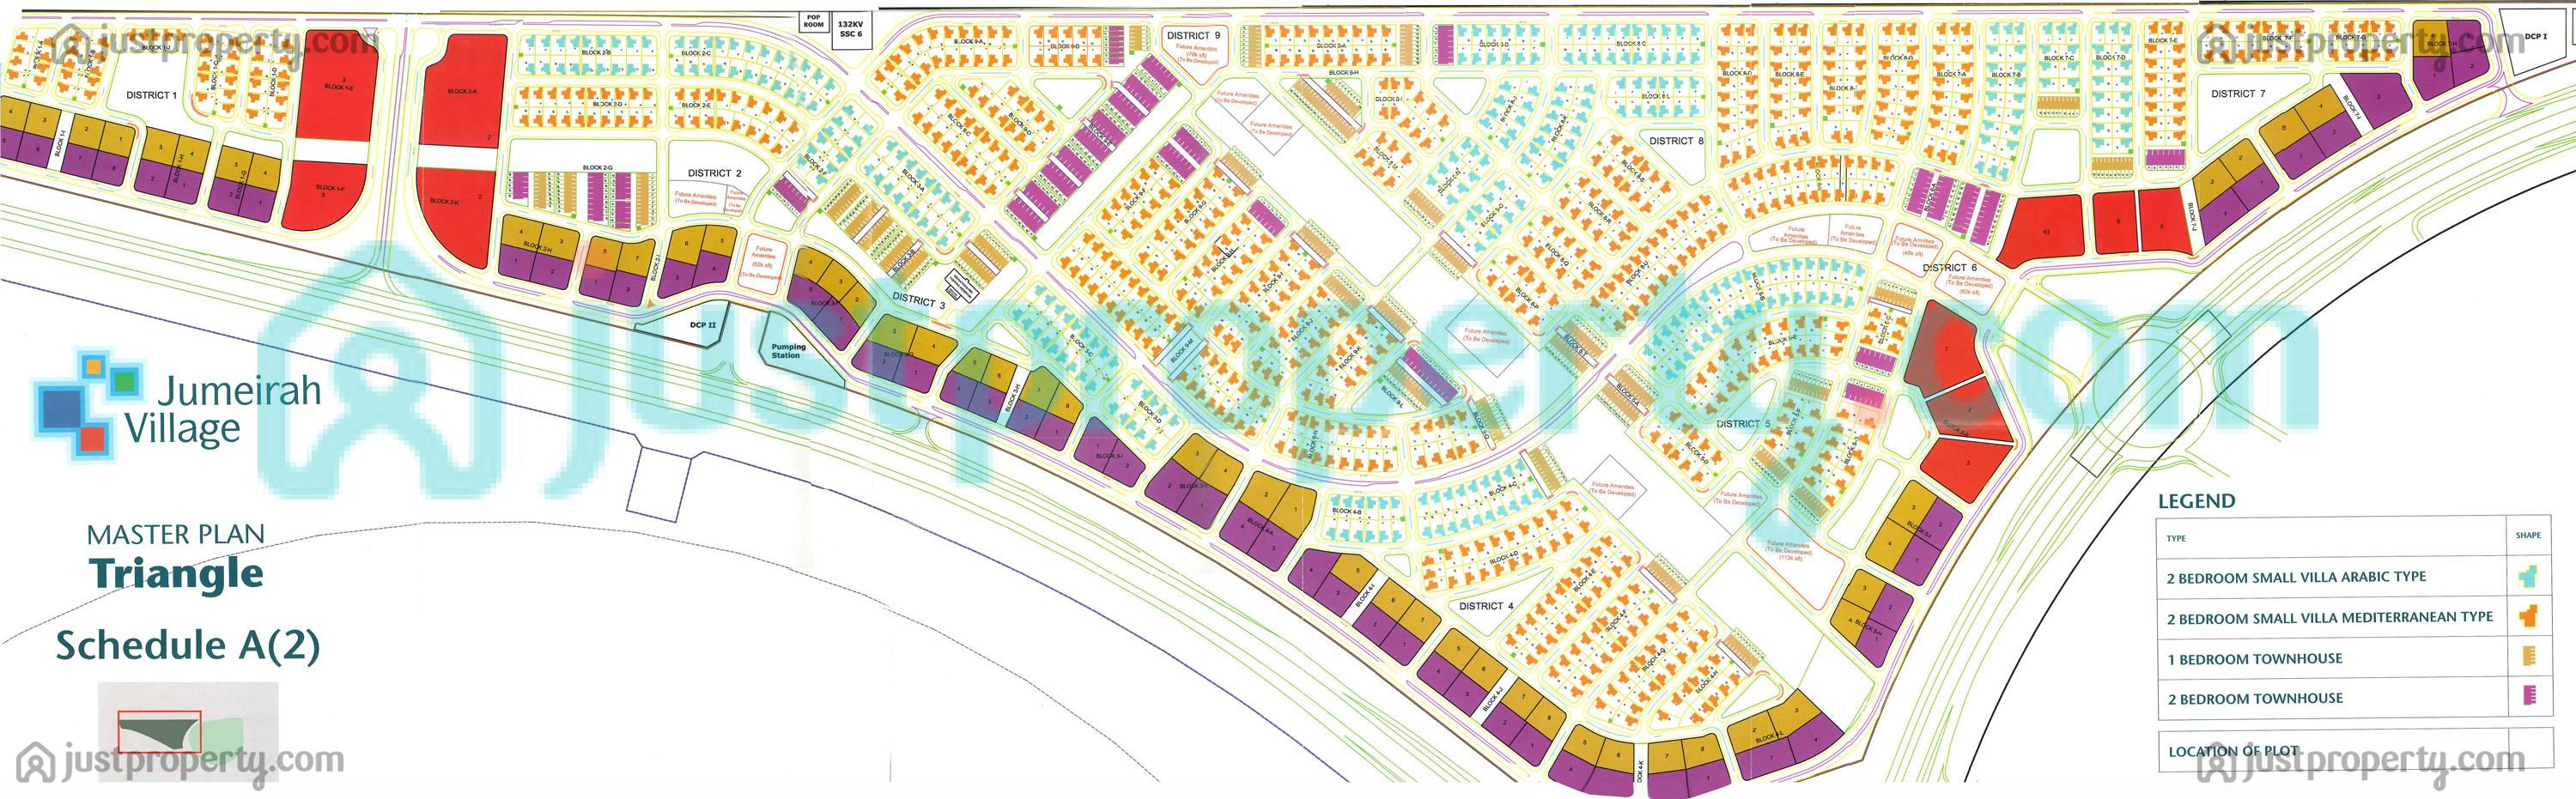 Floor Plans for Jumeirah Village Triangle (JVT)